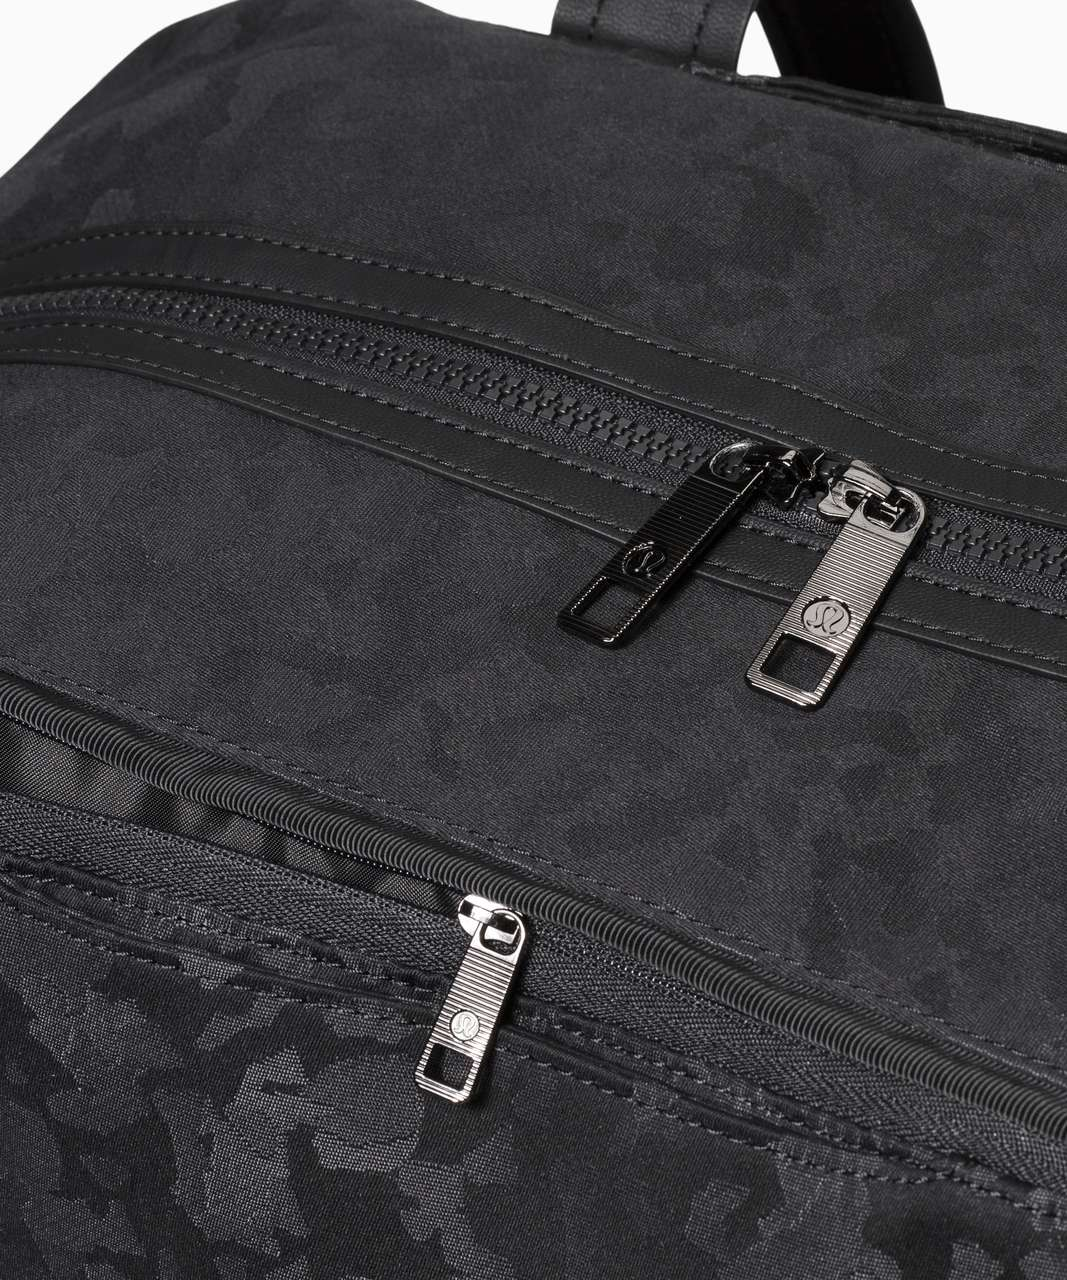 Lululemon Out Of Range Duffel *33L - Fragment Camo Jacquard Black Deep Coal